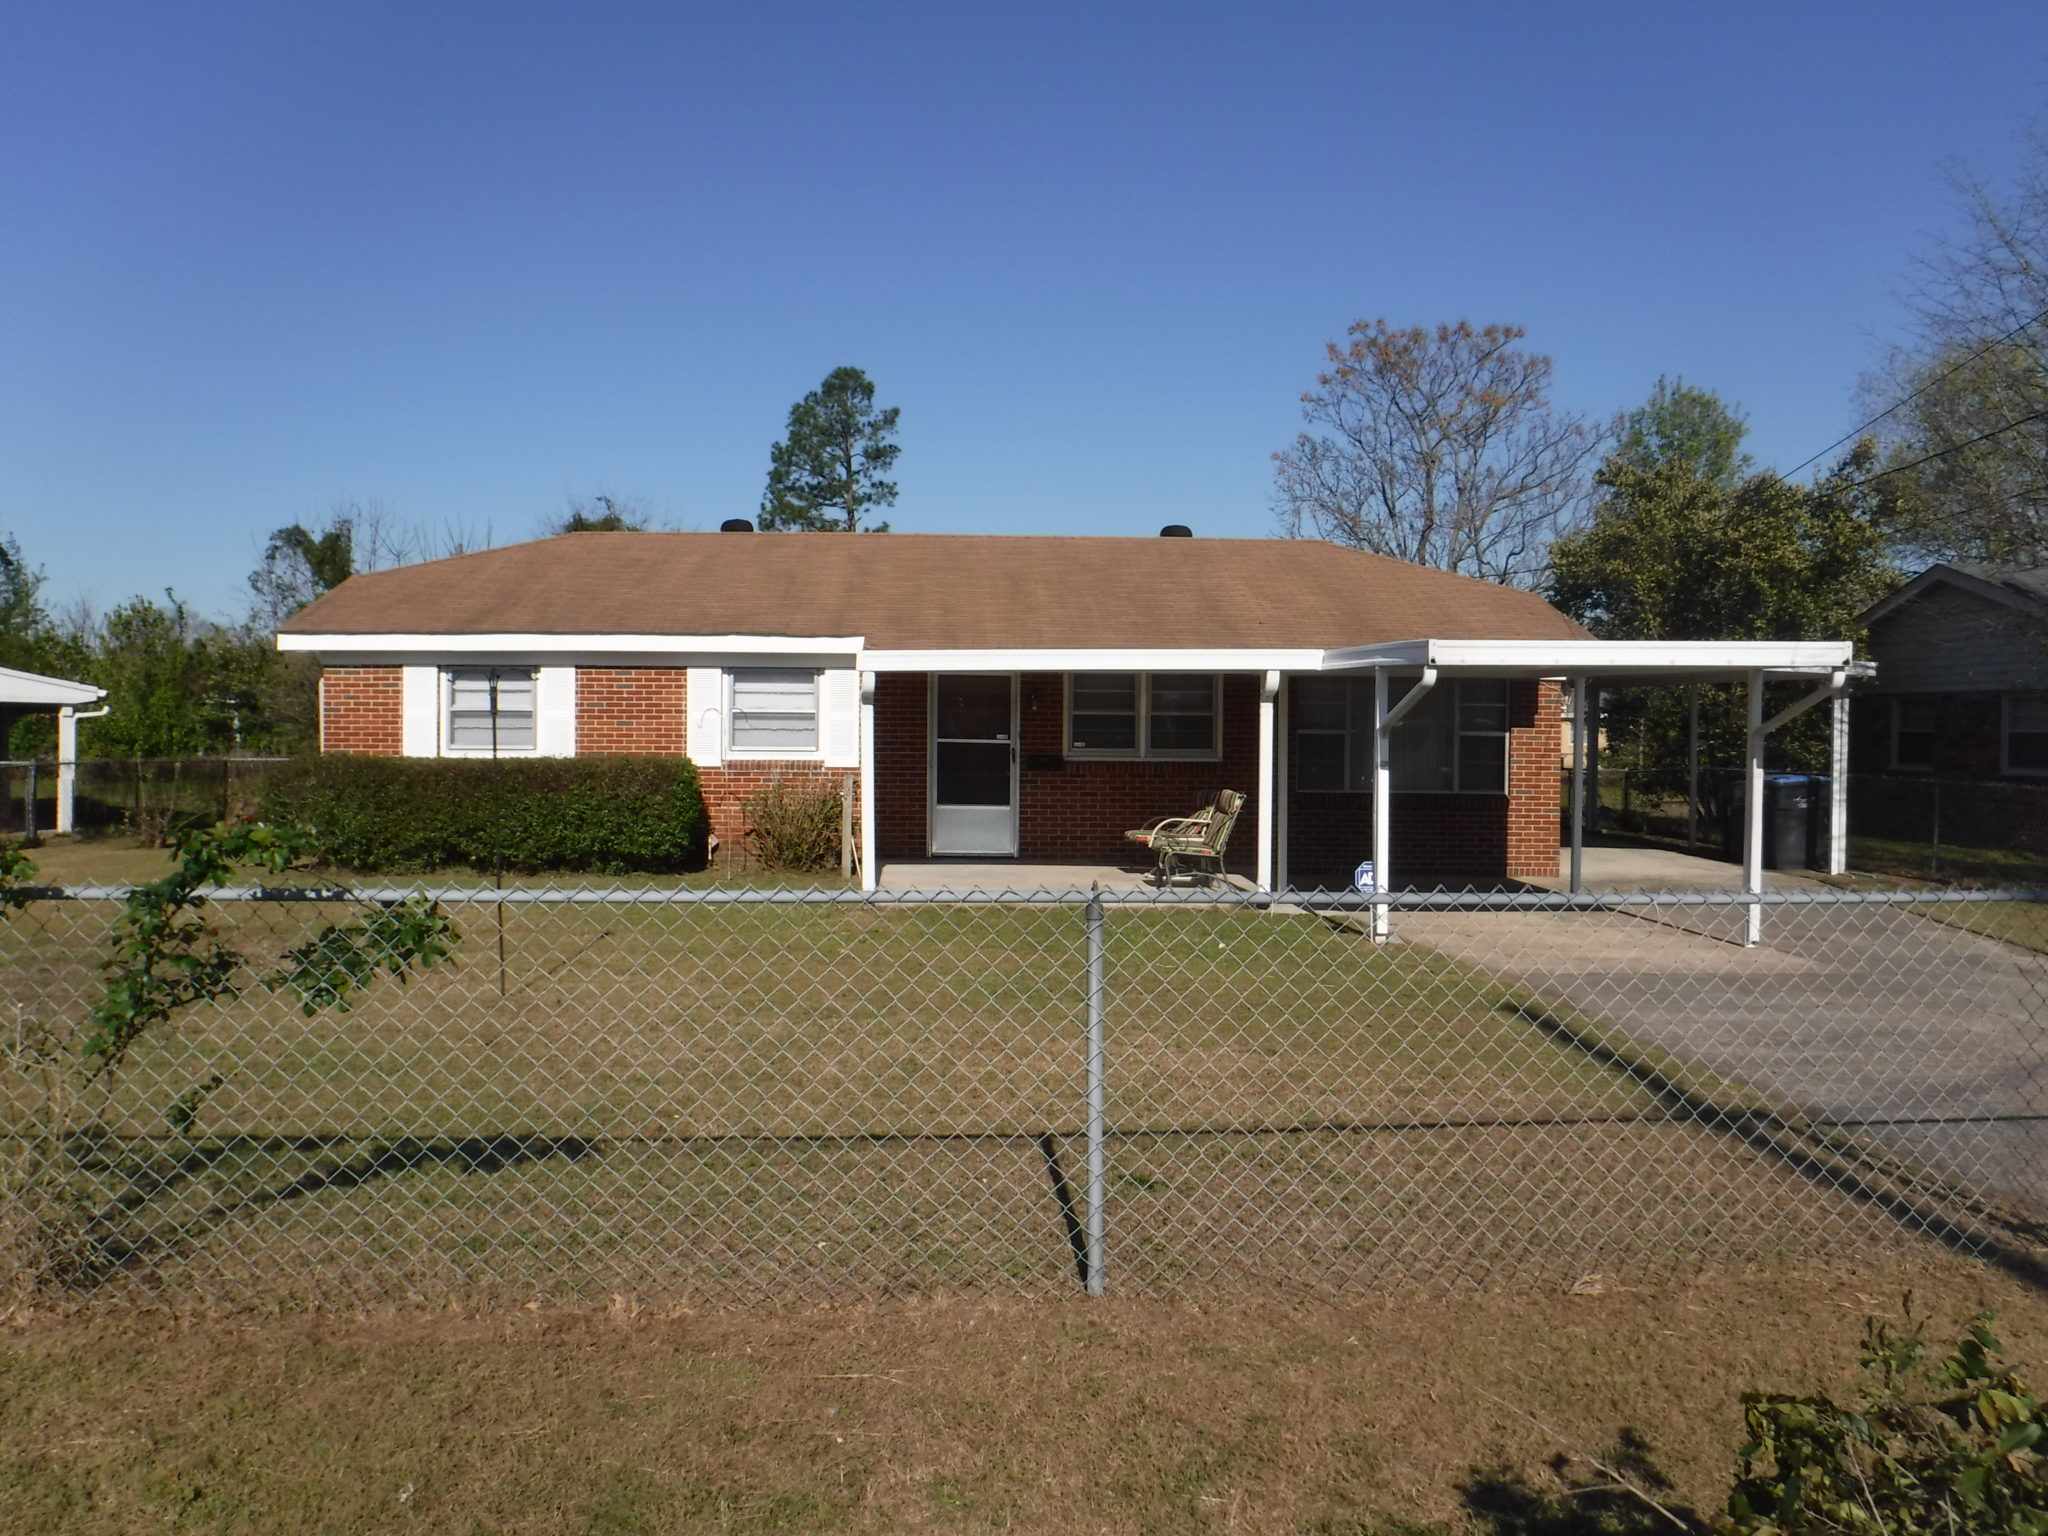 Front View Of House Showing Two Carports Veteran S Realty Of Augusta